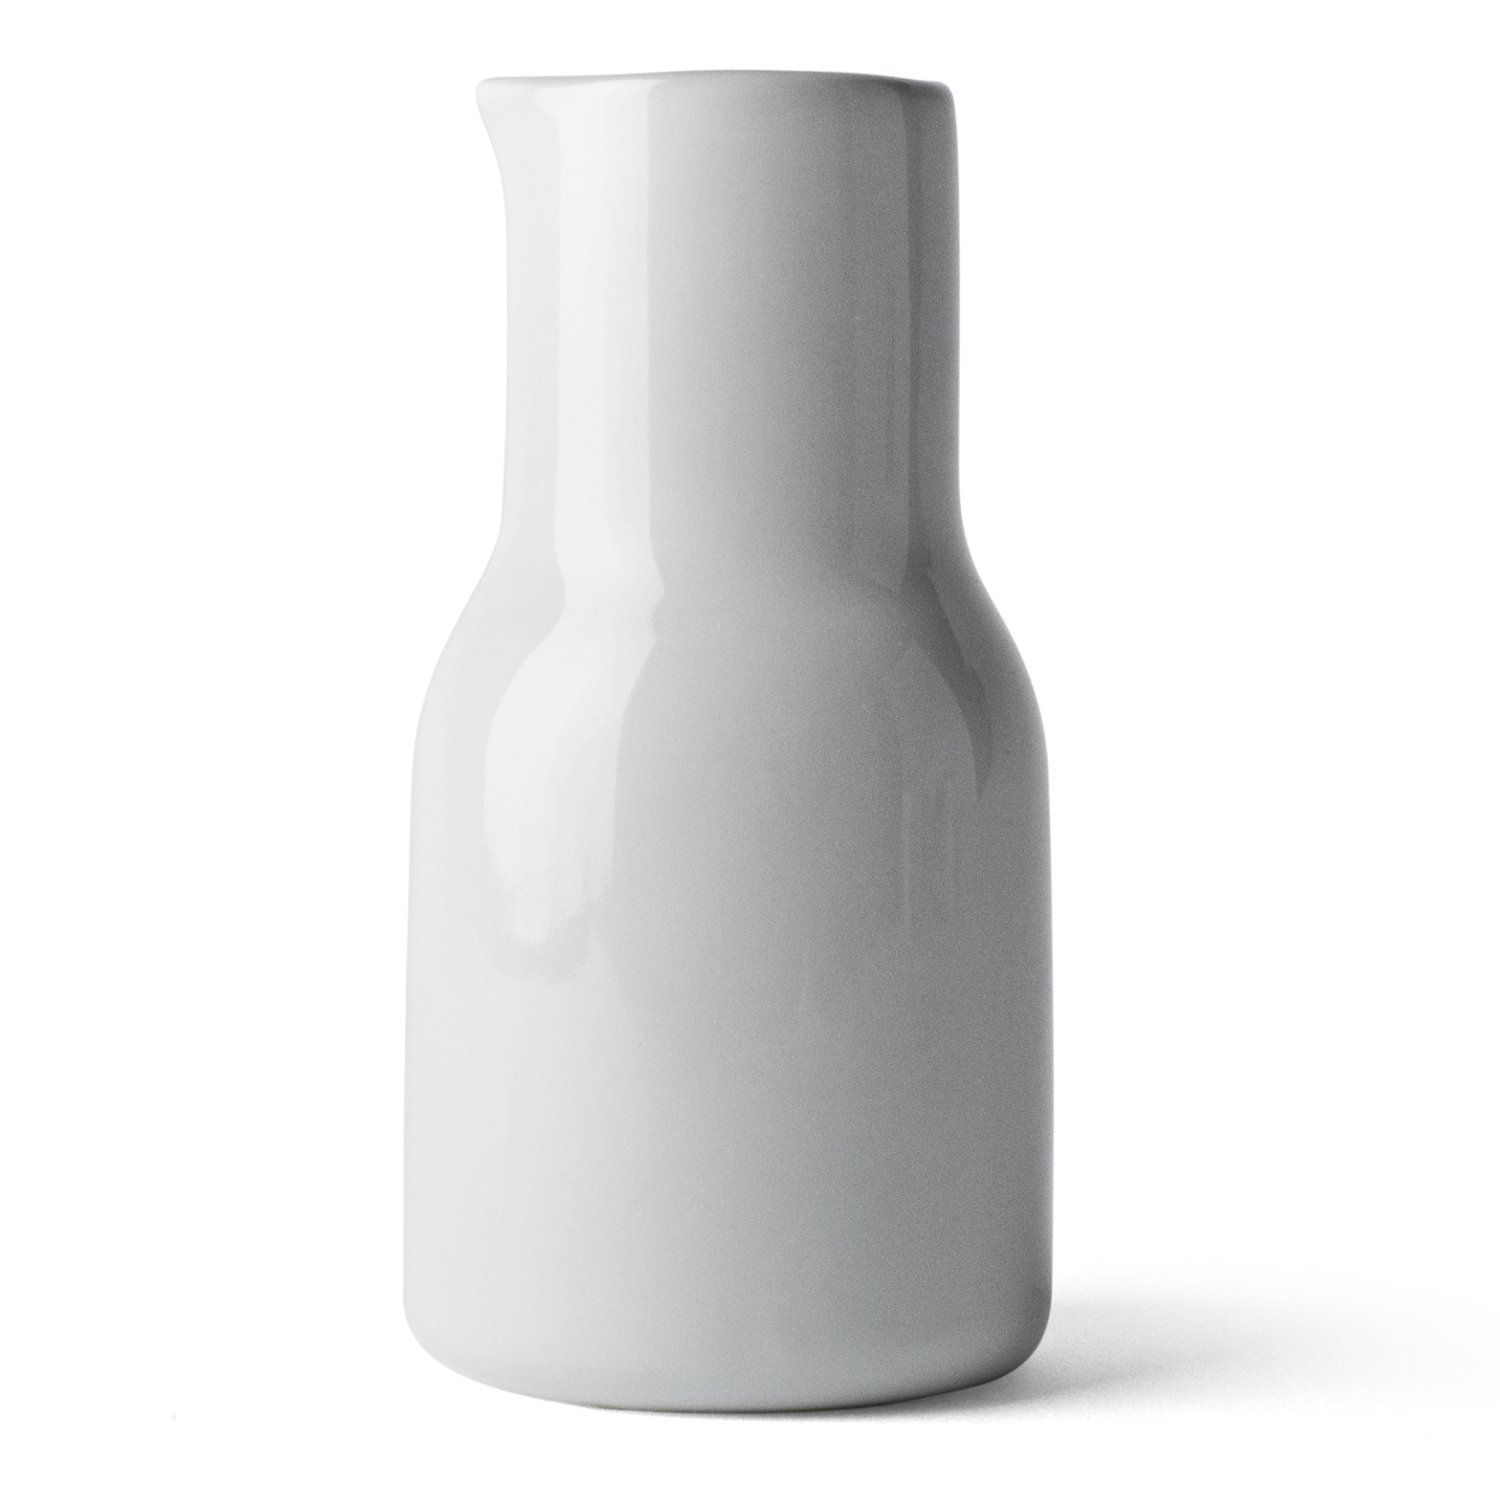 Botella porcelana minimalista 350 ml